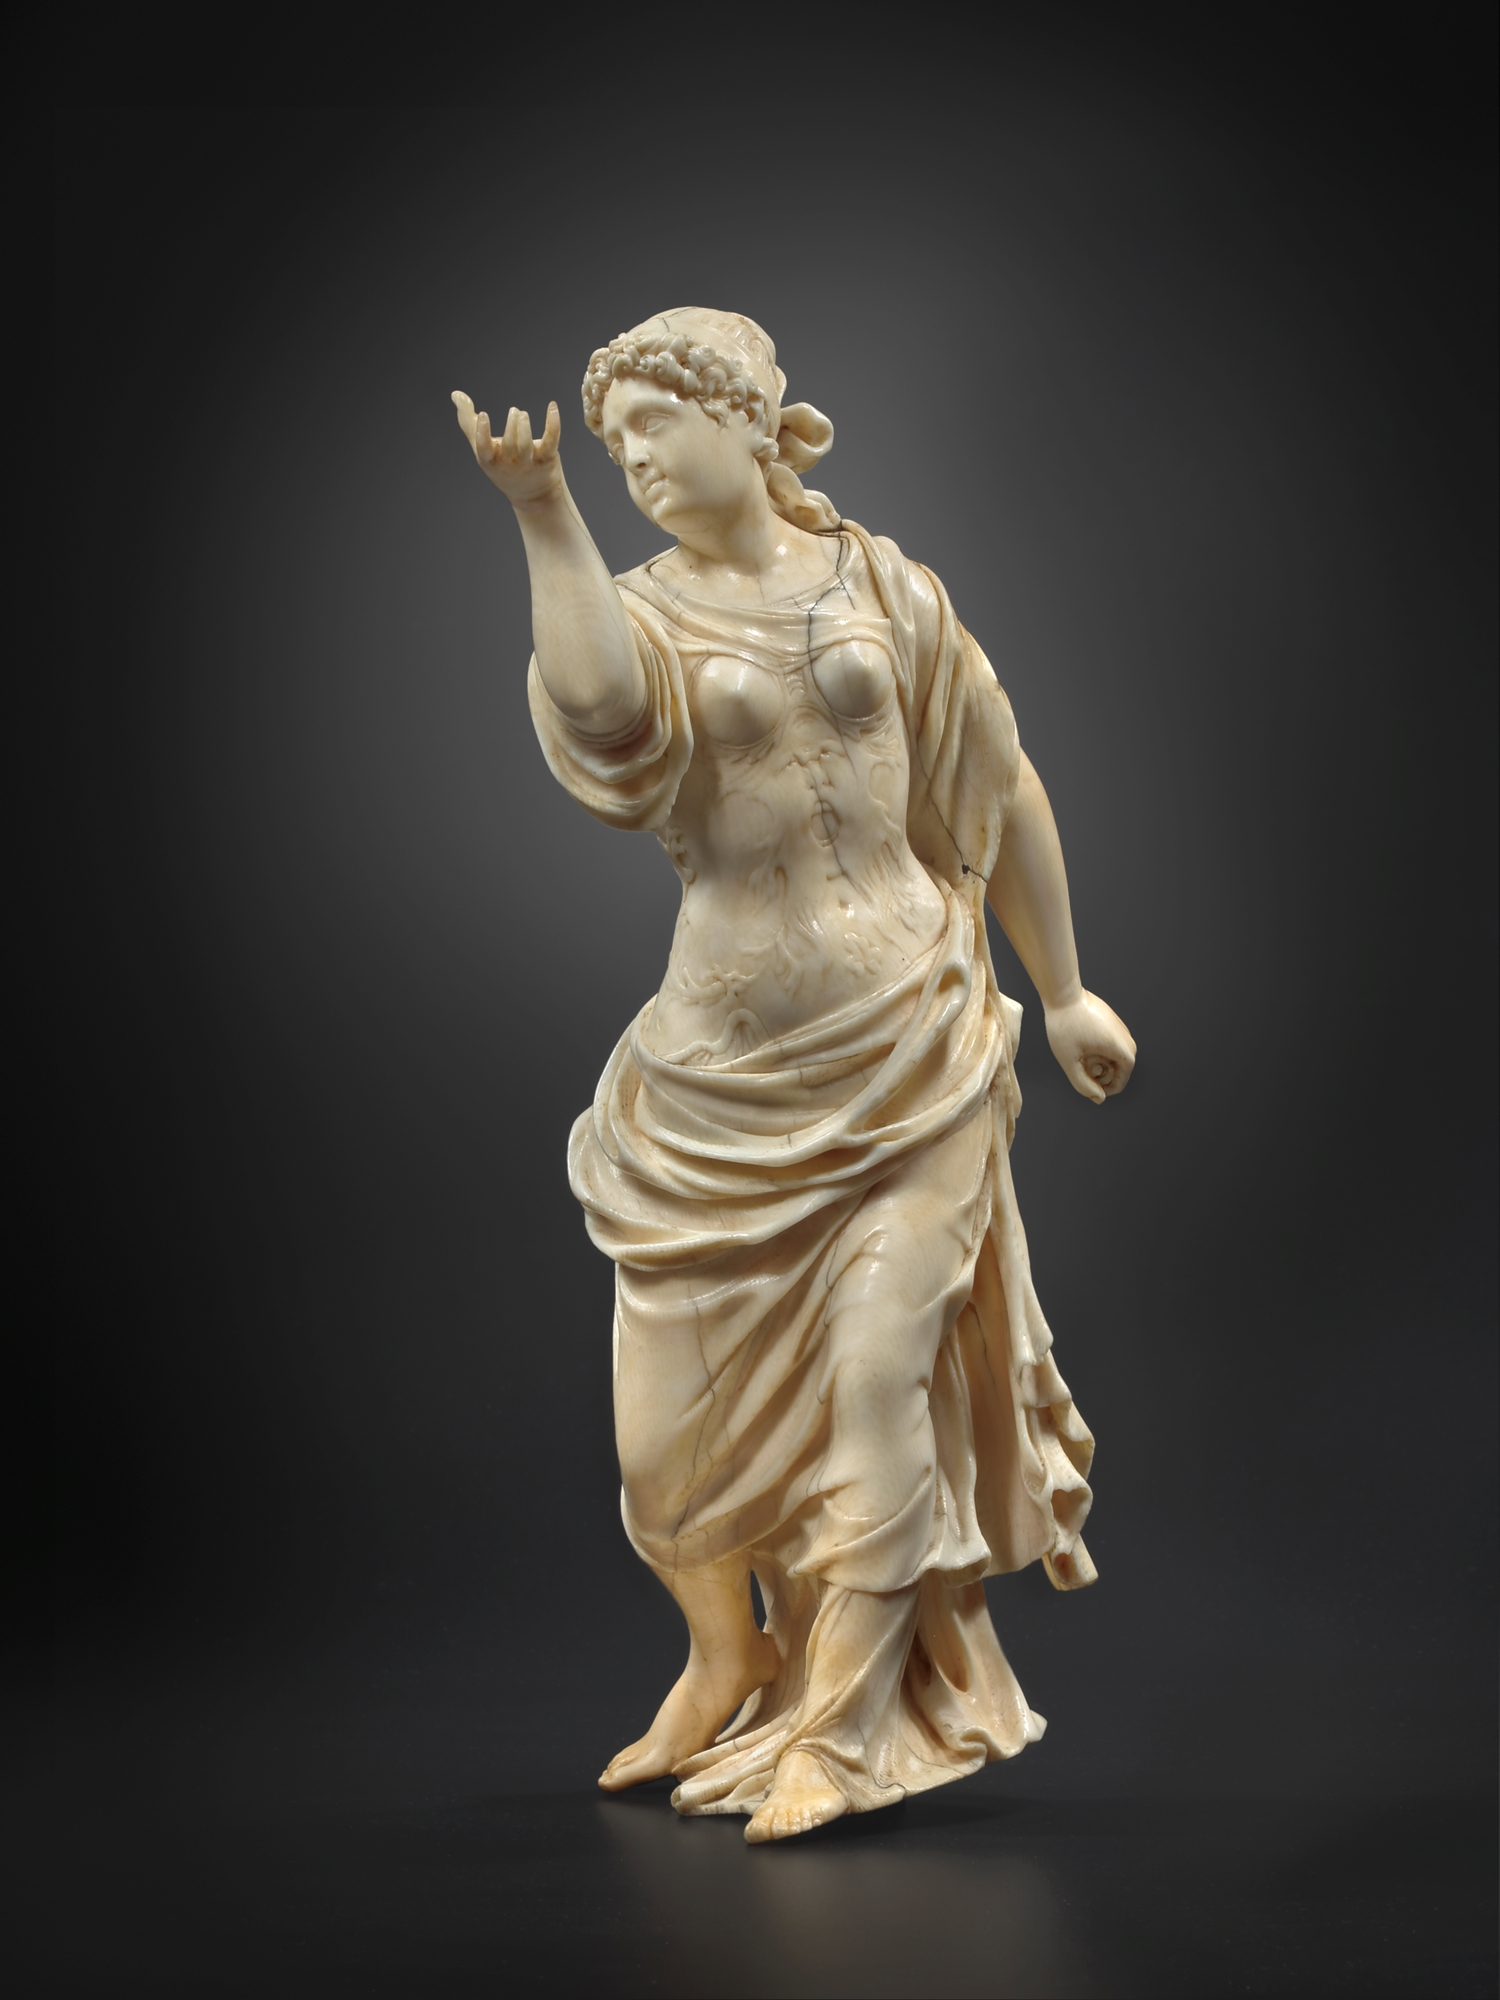 SALOME SOUTHERN GERMANY SECOND HALF OF THE 17TH CENTURY